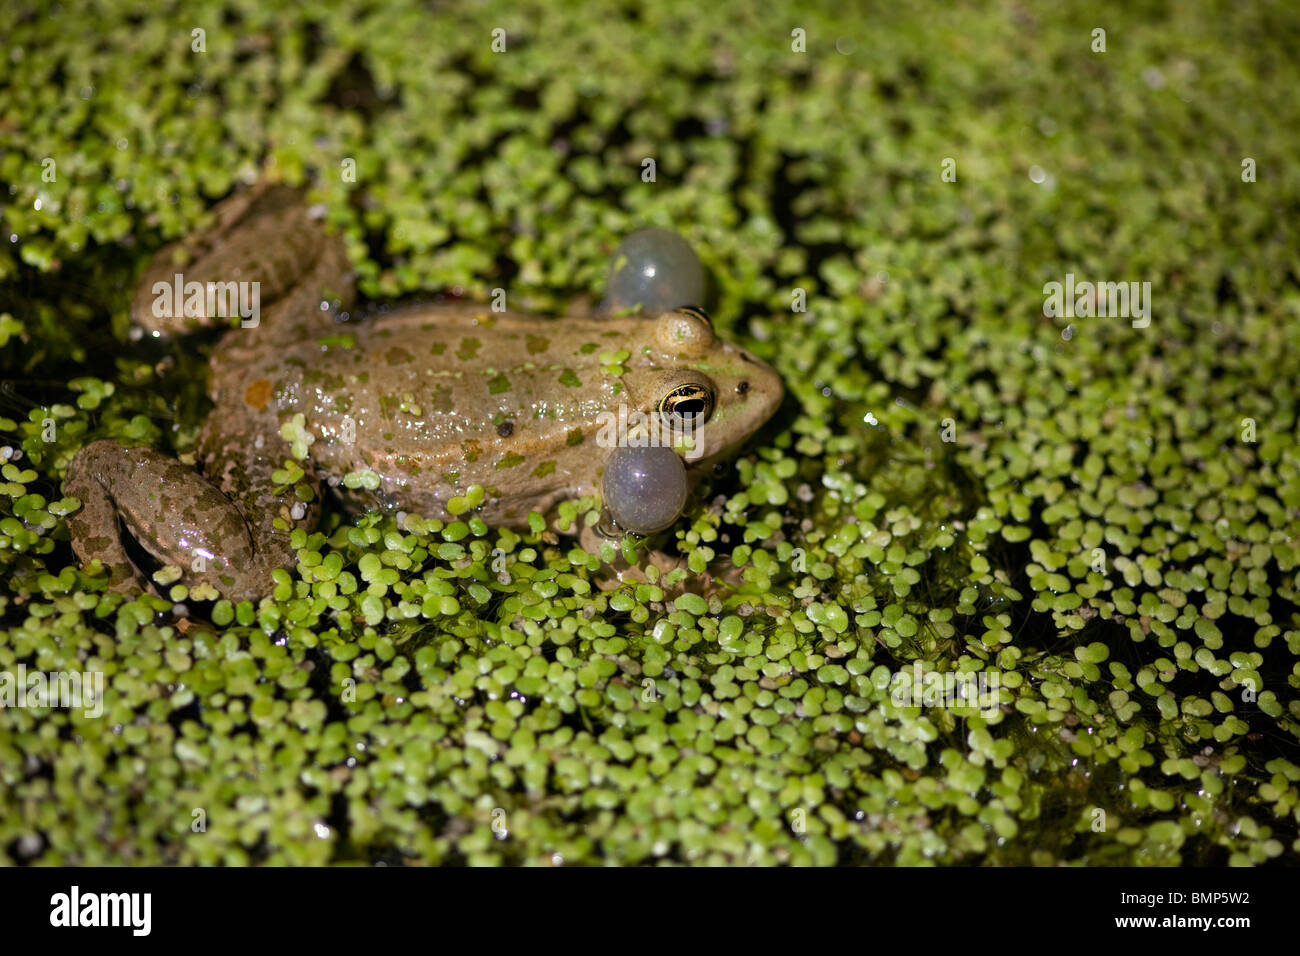 Marsh Frog Rana Ridibunda in pond weed  with prominent vocal sacs calling taken under controlled conditions - Stock Image